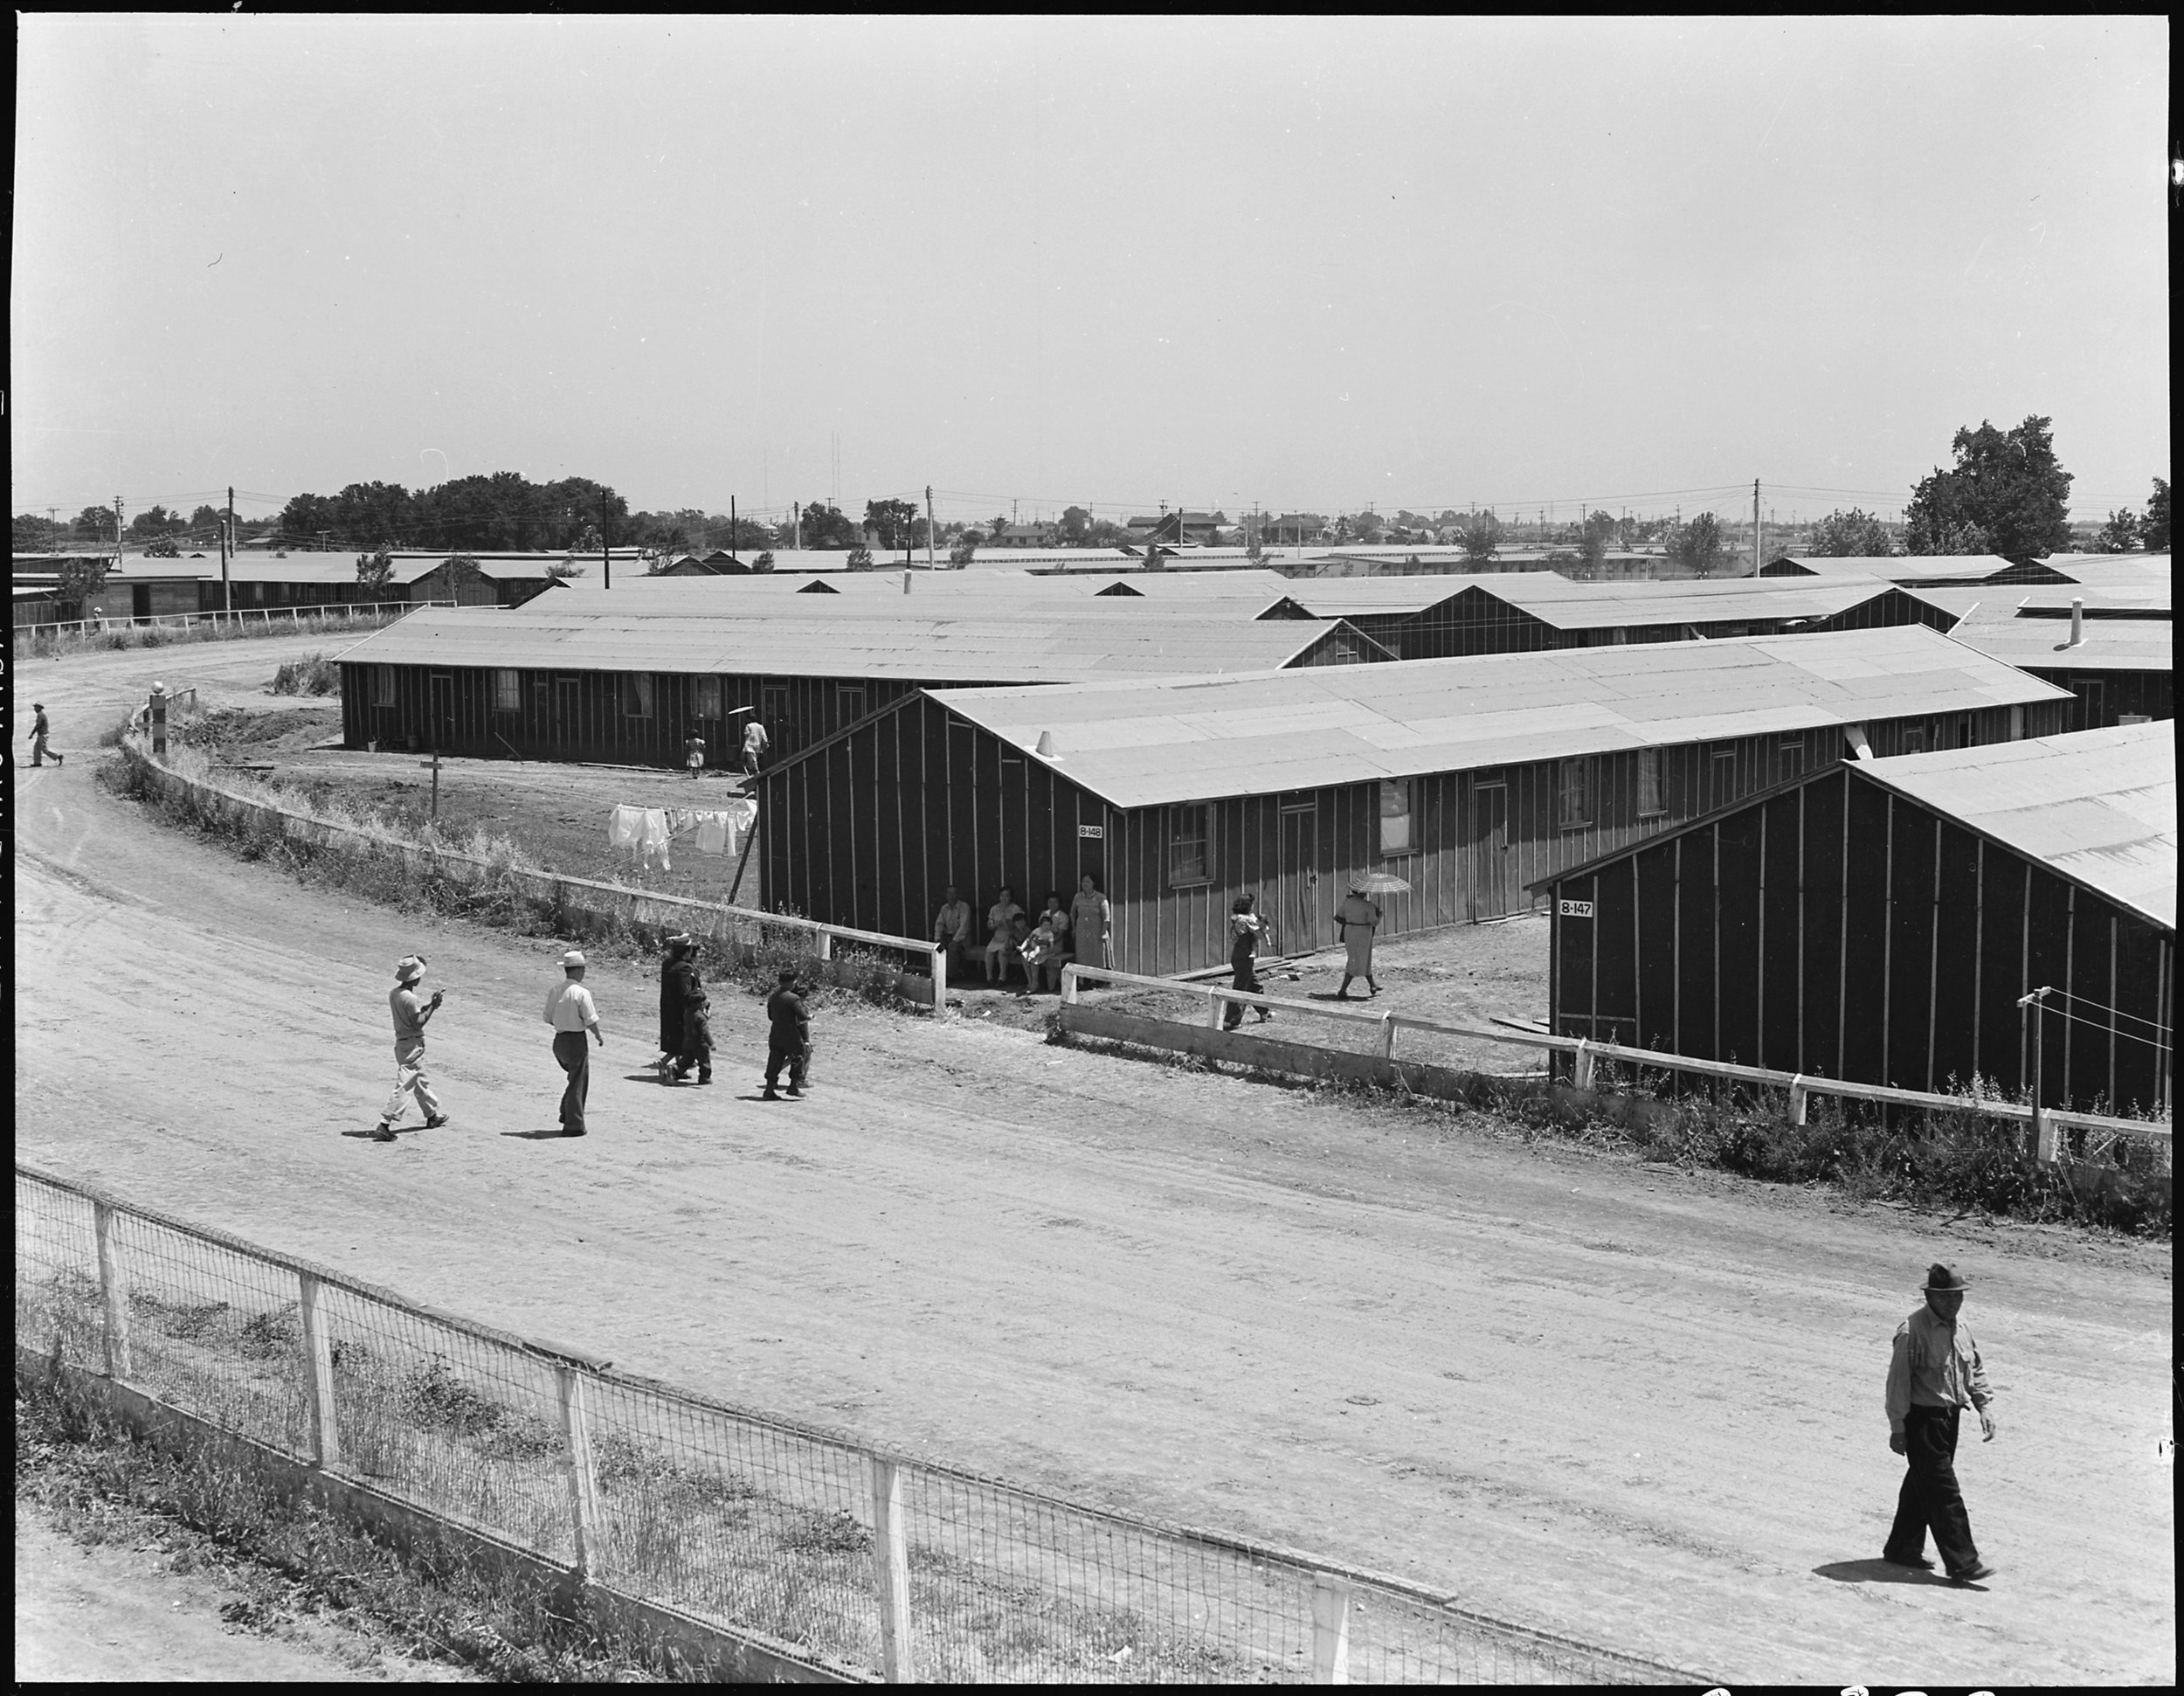 May 19, 1942 — Stockton, California. Noon on a hot day at the Stockton Assembly center, which is a converted fairgrounds. This photograph shows the old race track. This center has been opened a week and evacuees will arrive daily until the capacity of 5000 is reached.